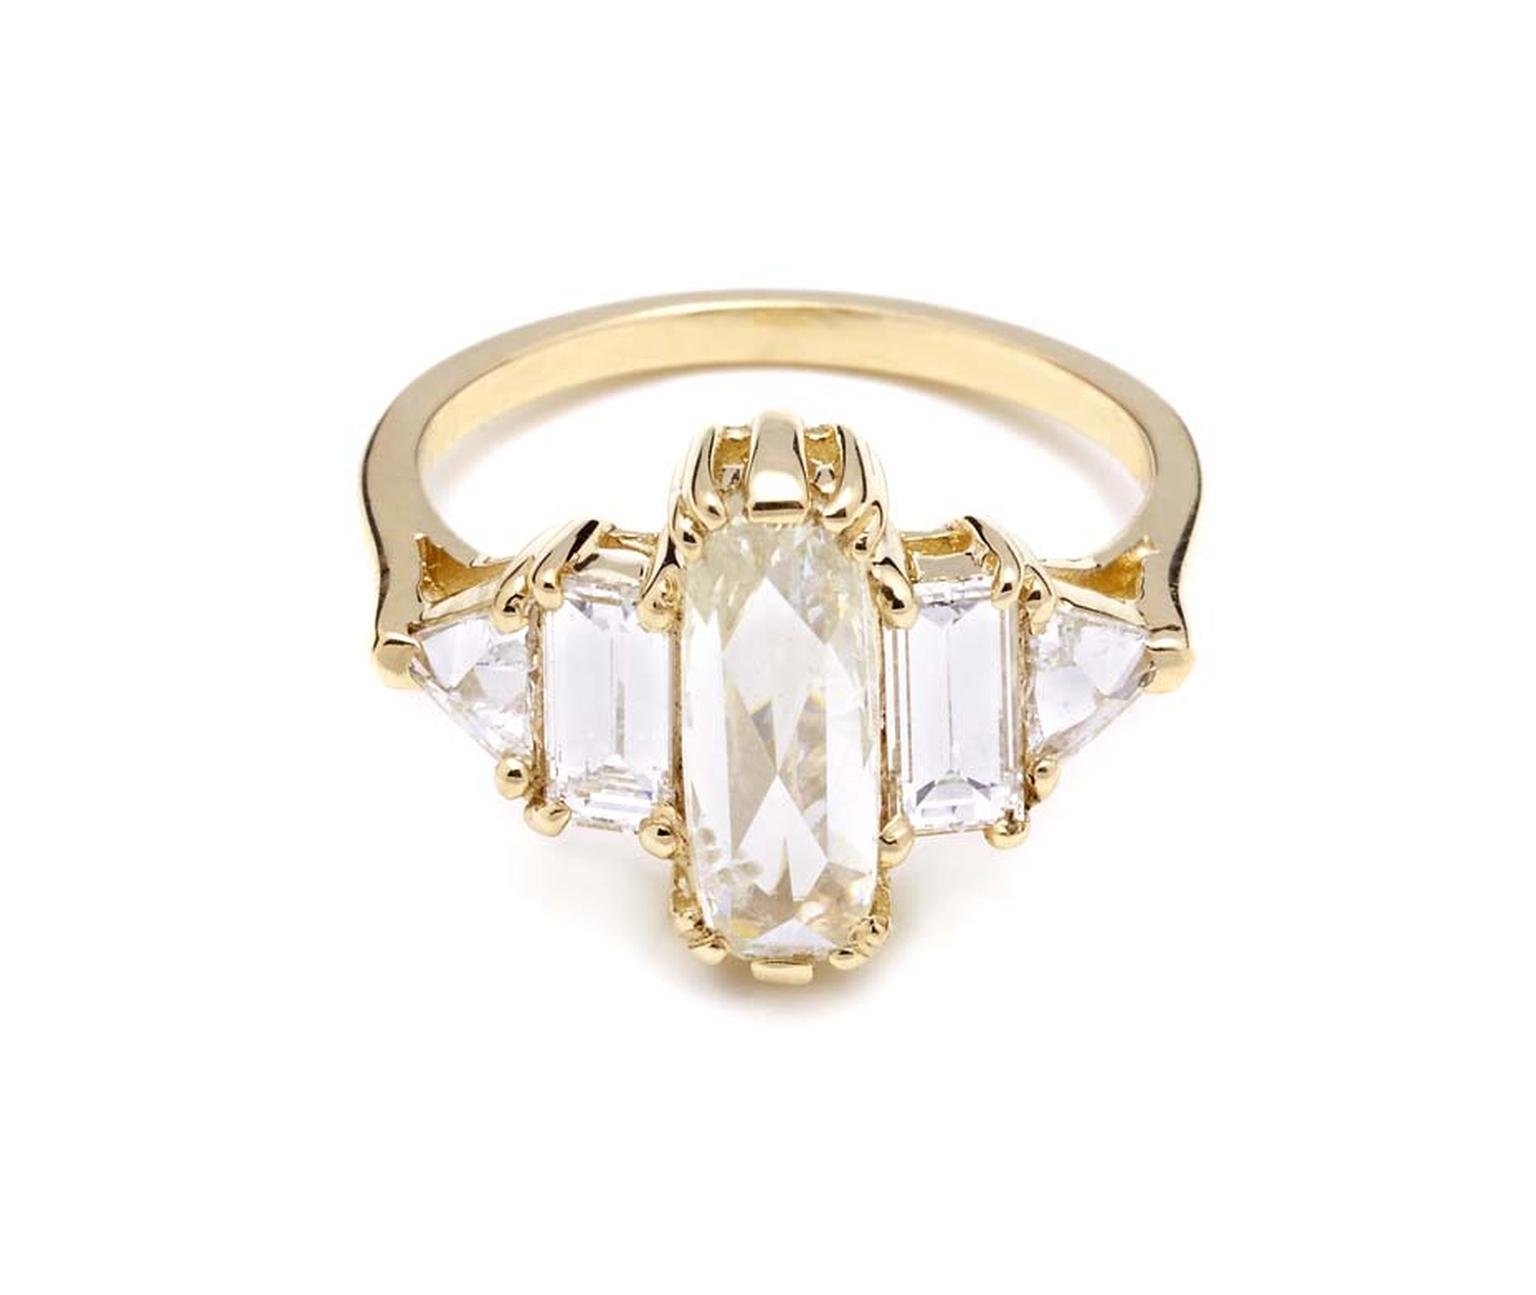 Anna Sheffield Theda ring, with a central elongated rose-cut pale yellow diamond flanked by four white diamonds in yellow gold